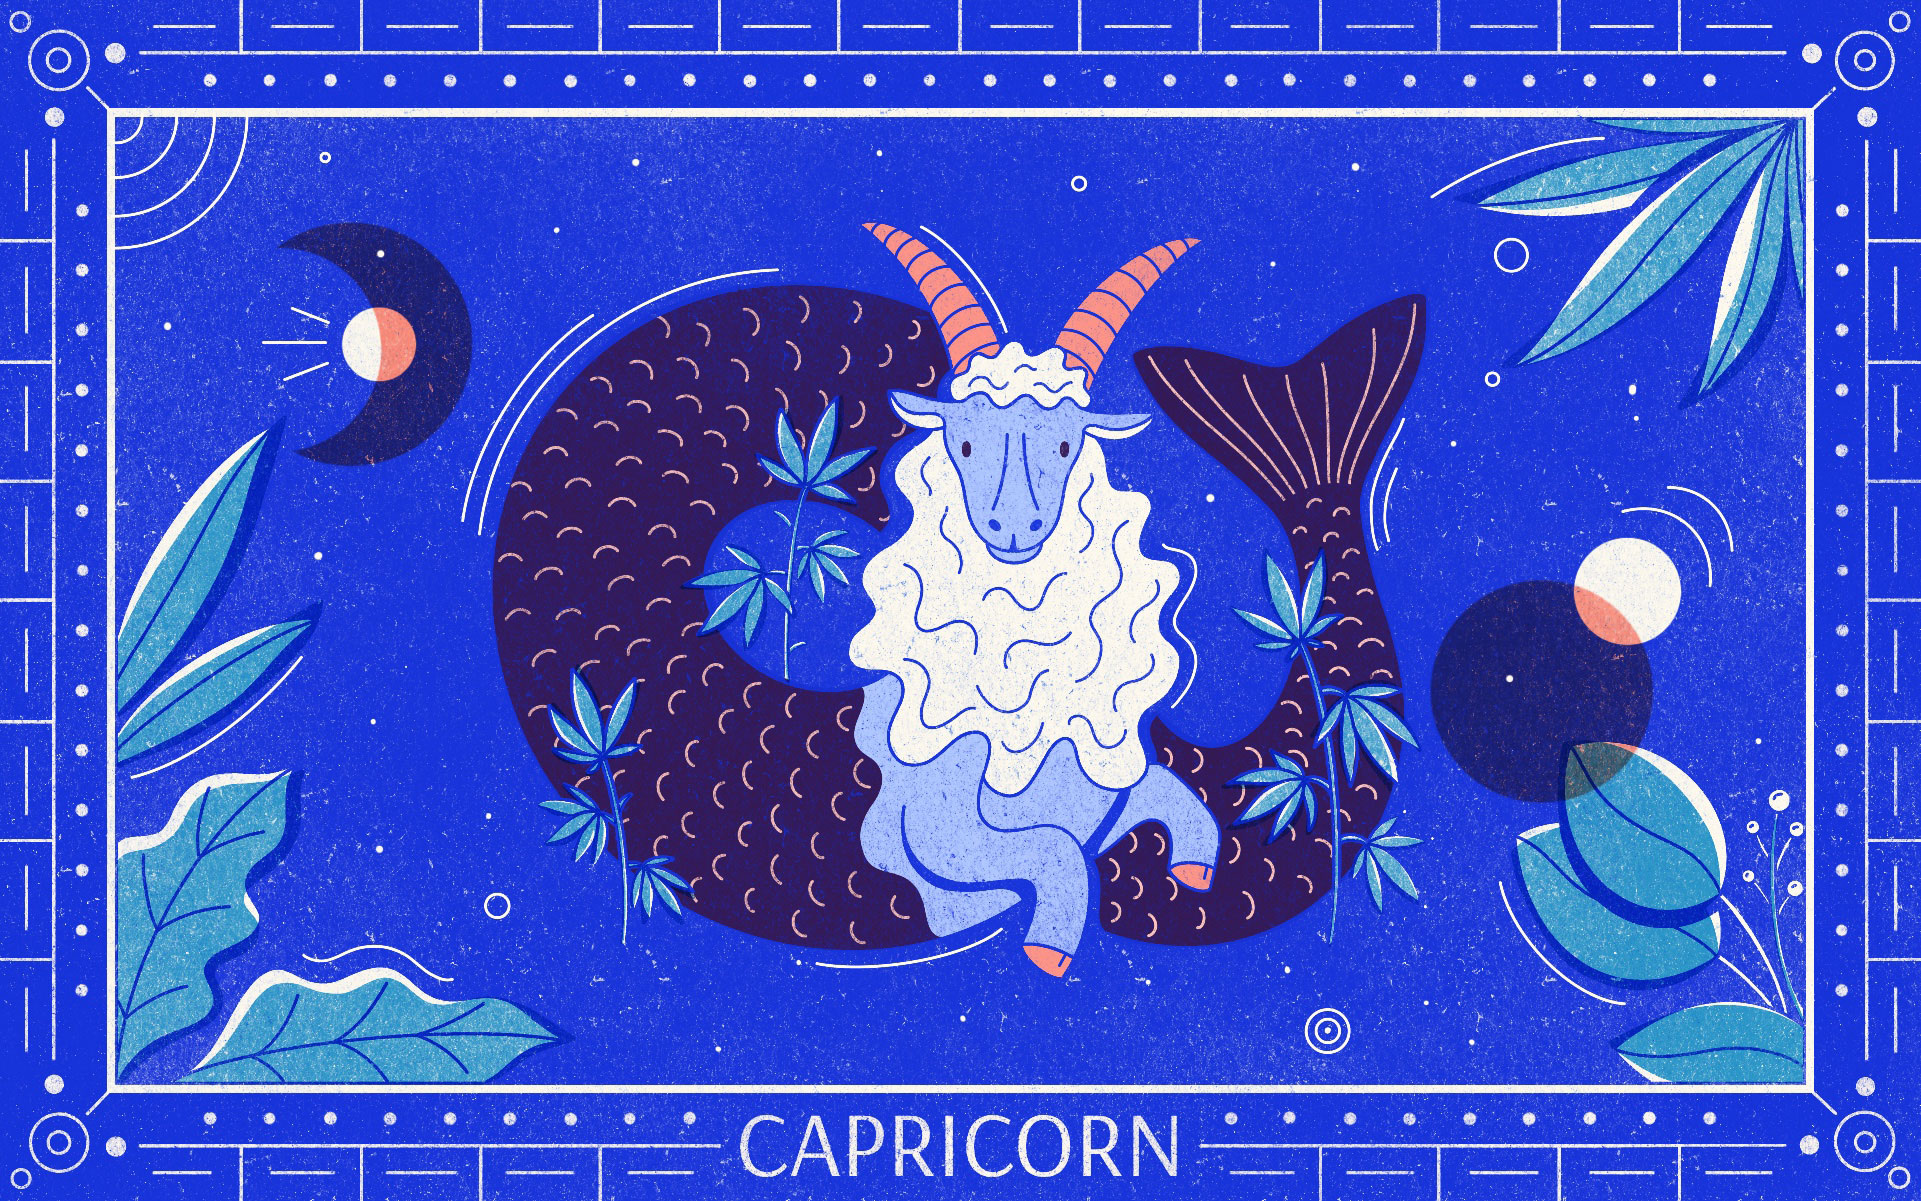 CAPRICORN web Gillian Levine - Star signs and cannabis strains: July 2020 horoscopes